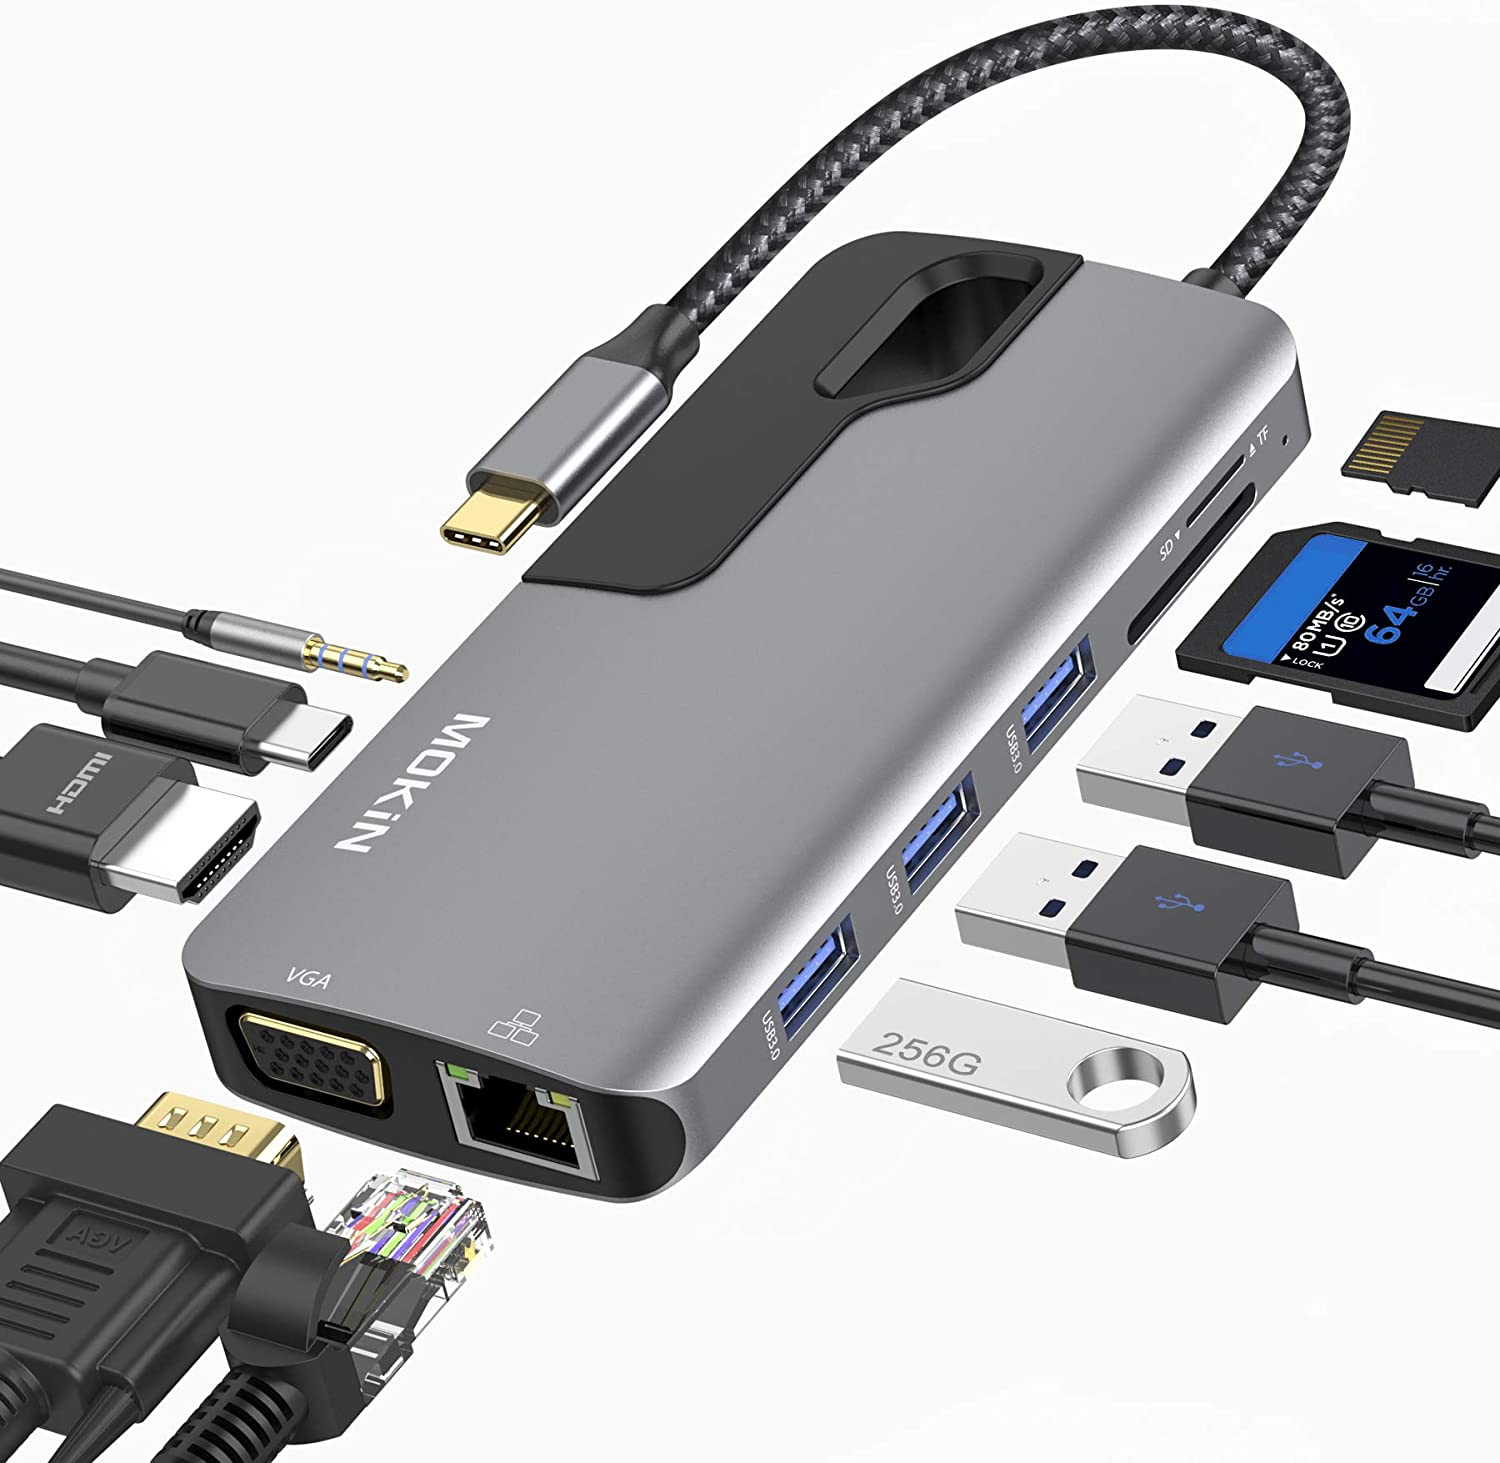 USB C Hub Adapter for MacBook Pro, Thunderbolt 3 Adapter,10-in-1 USB C Dongle with Gigabit Ethernet, USB C to HDMI VGA Adapter,100W Power Delivery,3 USB 3.0, SD TF Card Reader-Through Port Adapters.